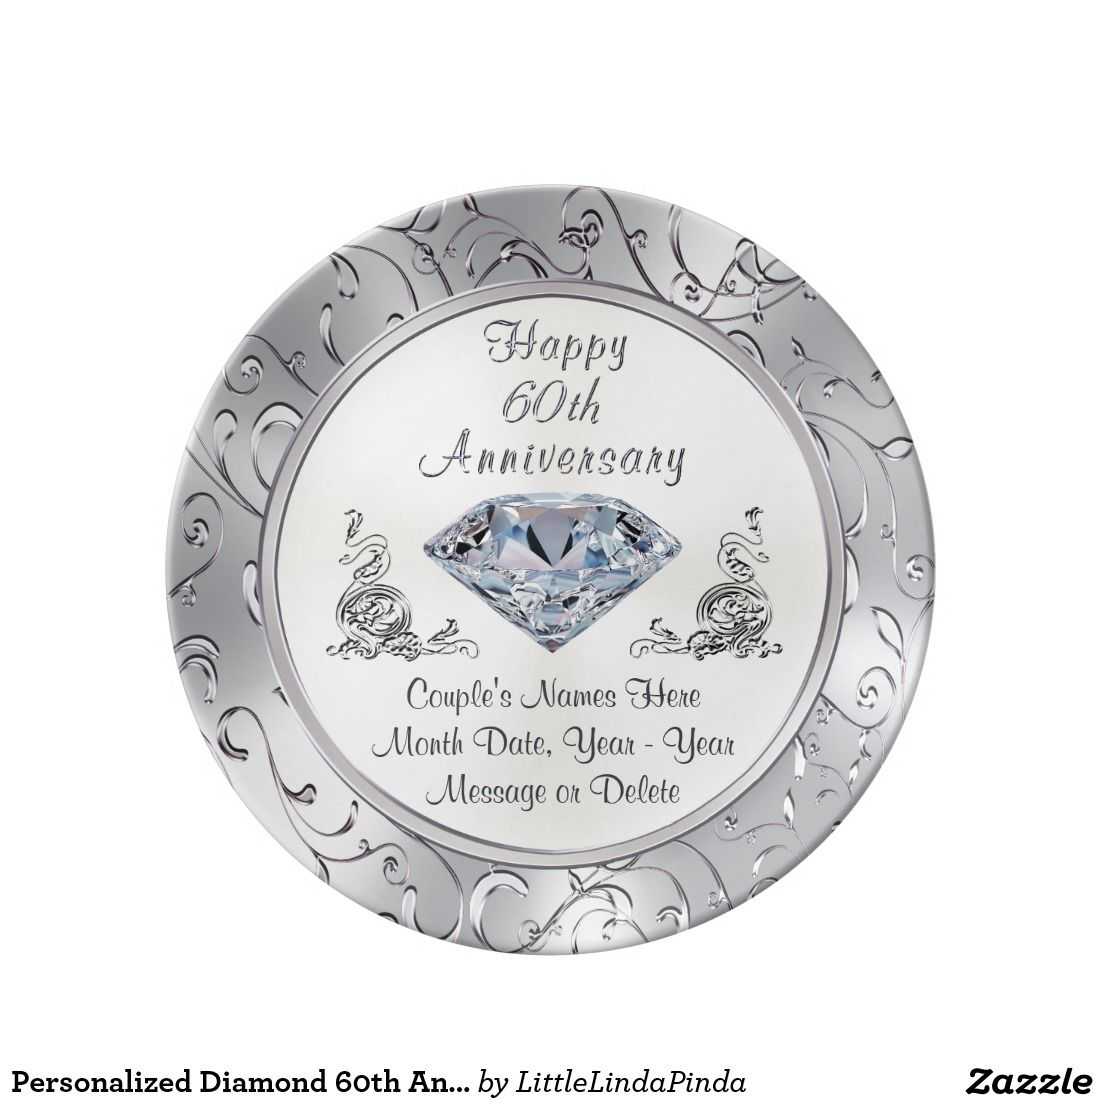 Gifts For 60th Wedding Anniversary: Personalized Diamond 60th Anniversary Plate